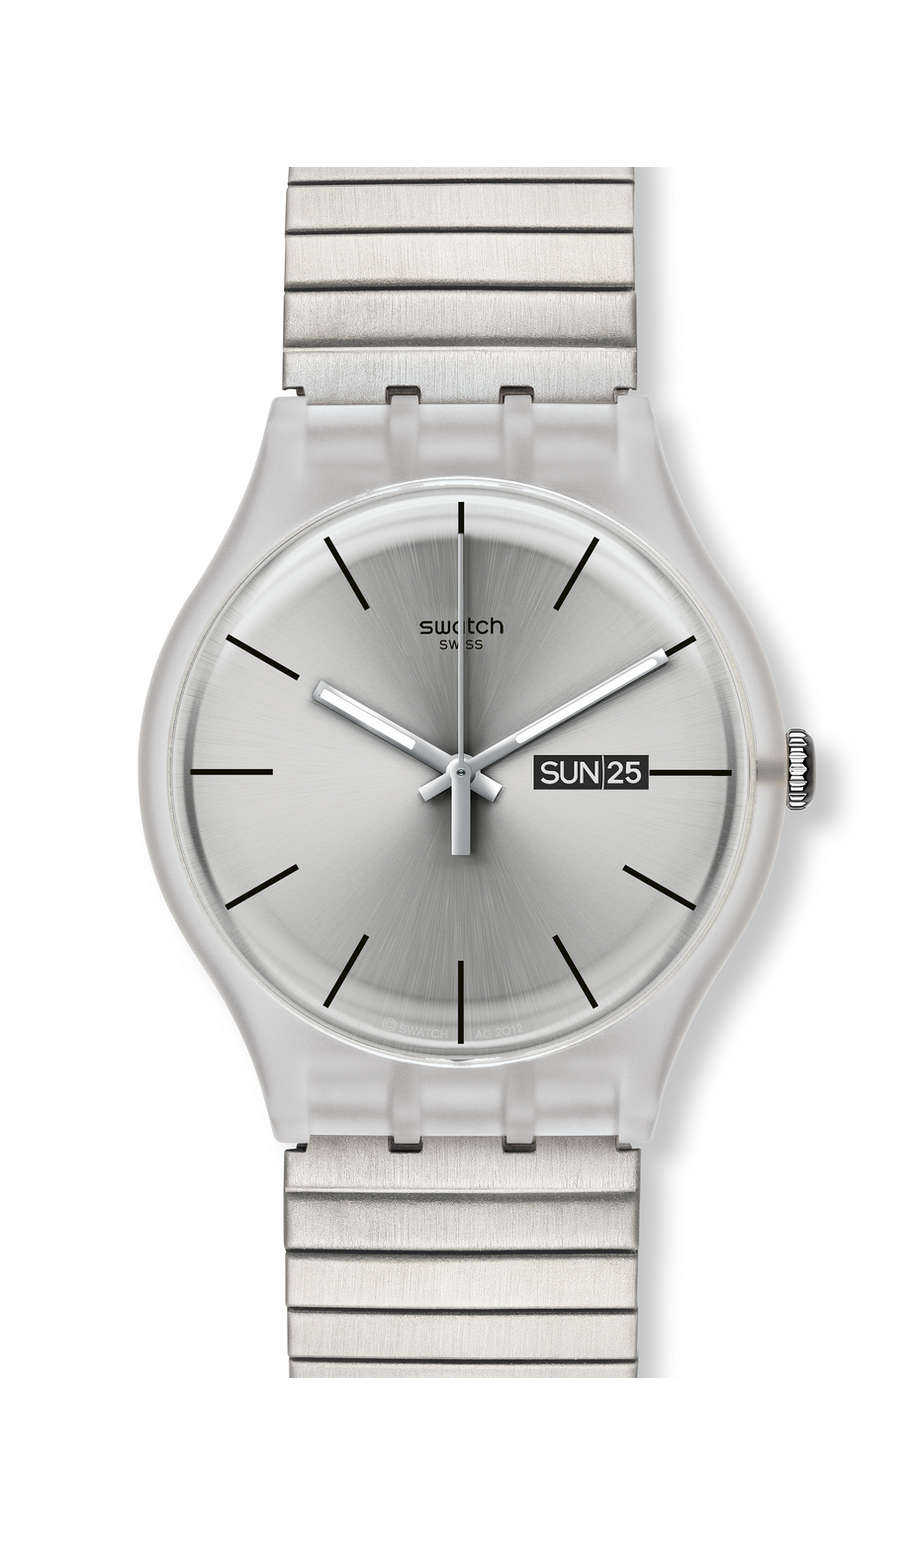 Swatch - RESOLUTION - 1